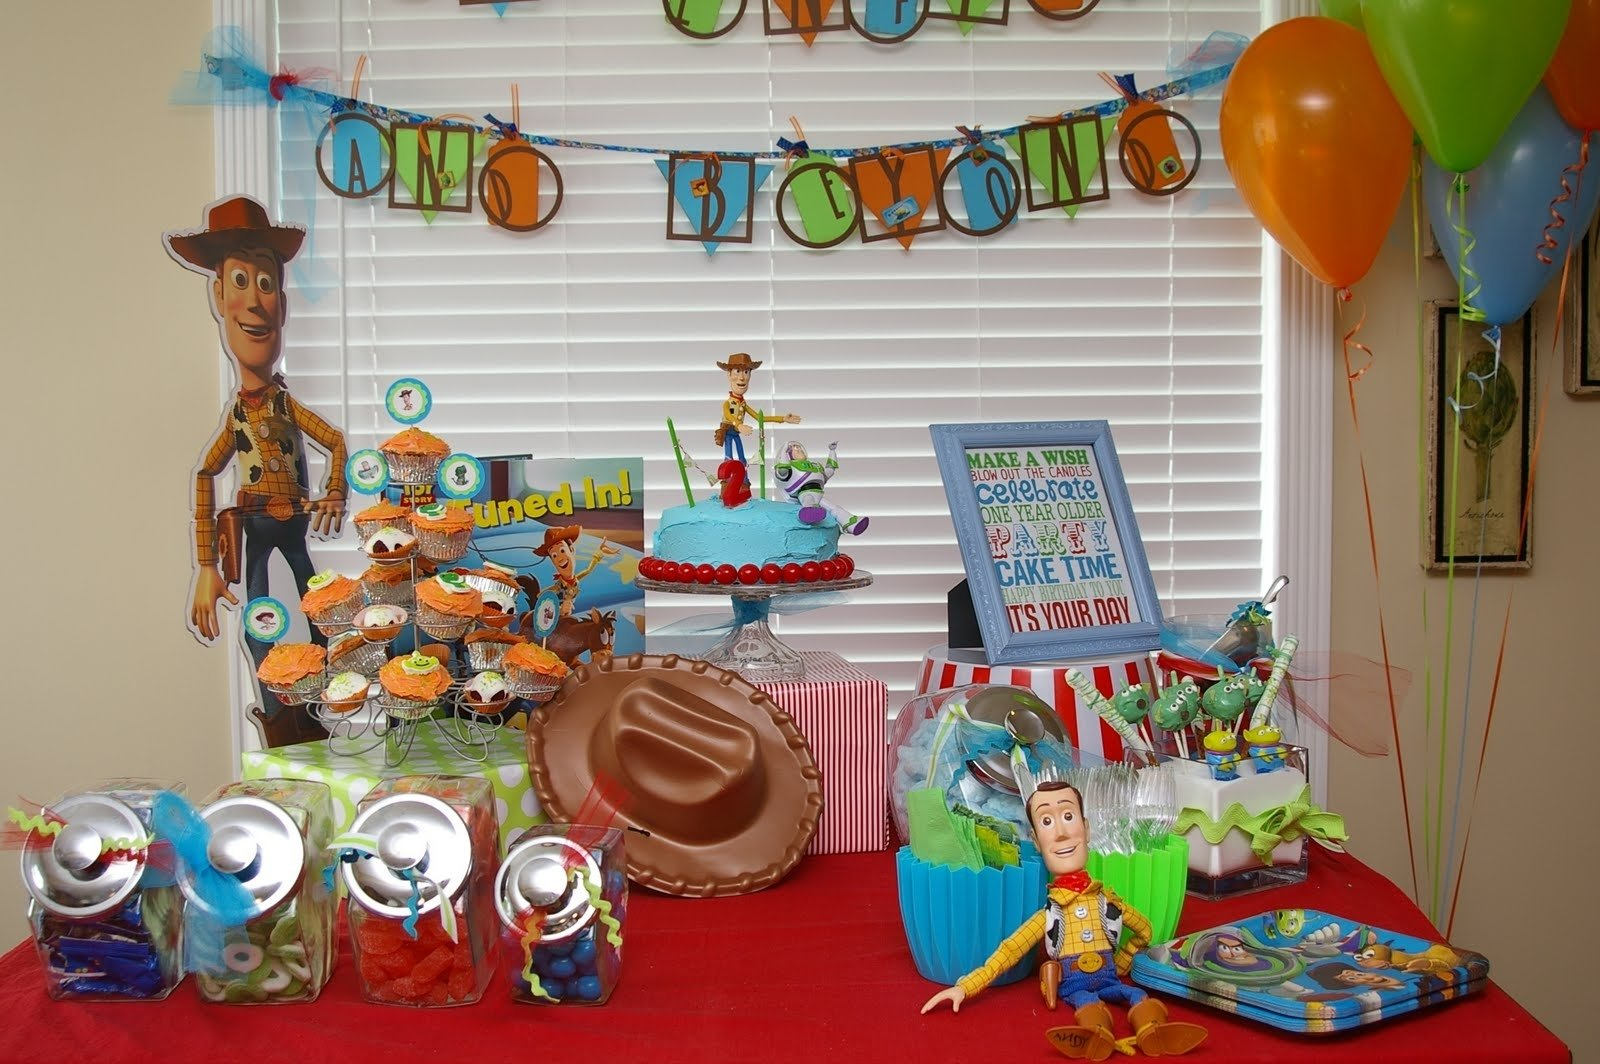 10 Spectacular Toy Story Birthday Party Ideas toy story decoration ideas toy story decorations for birthday 2021